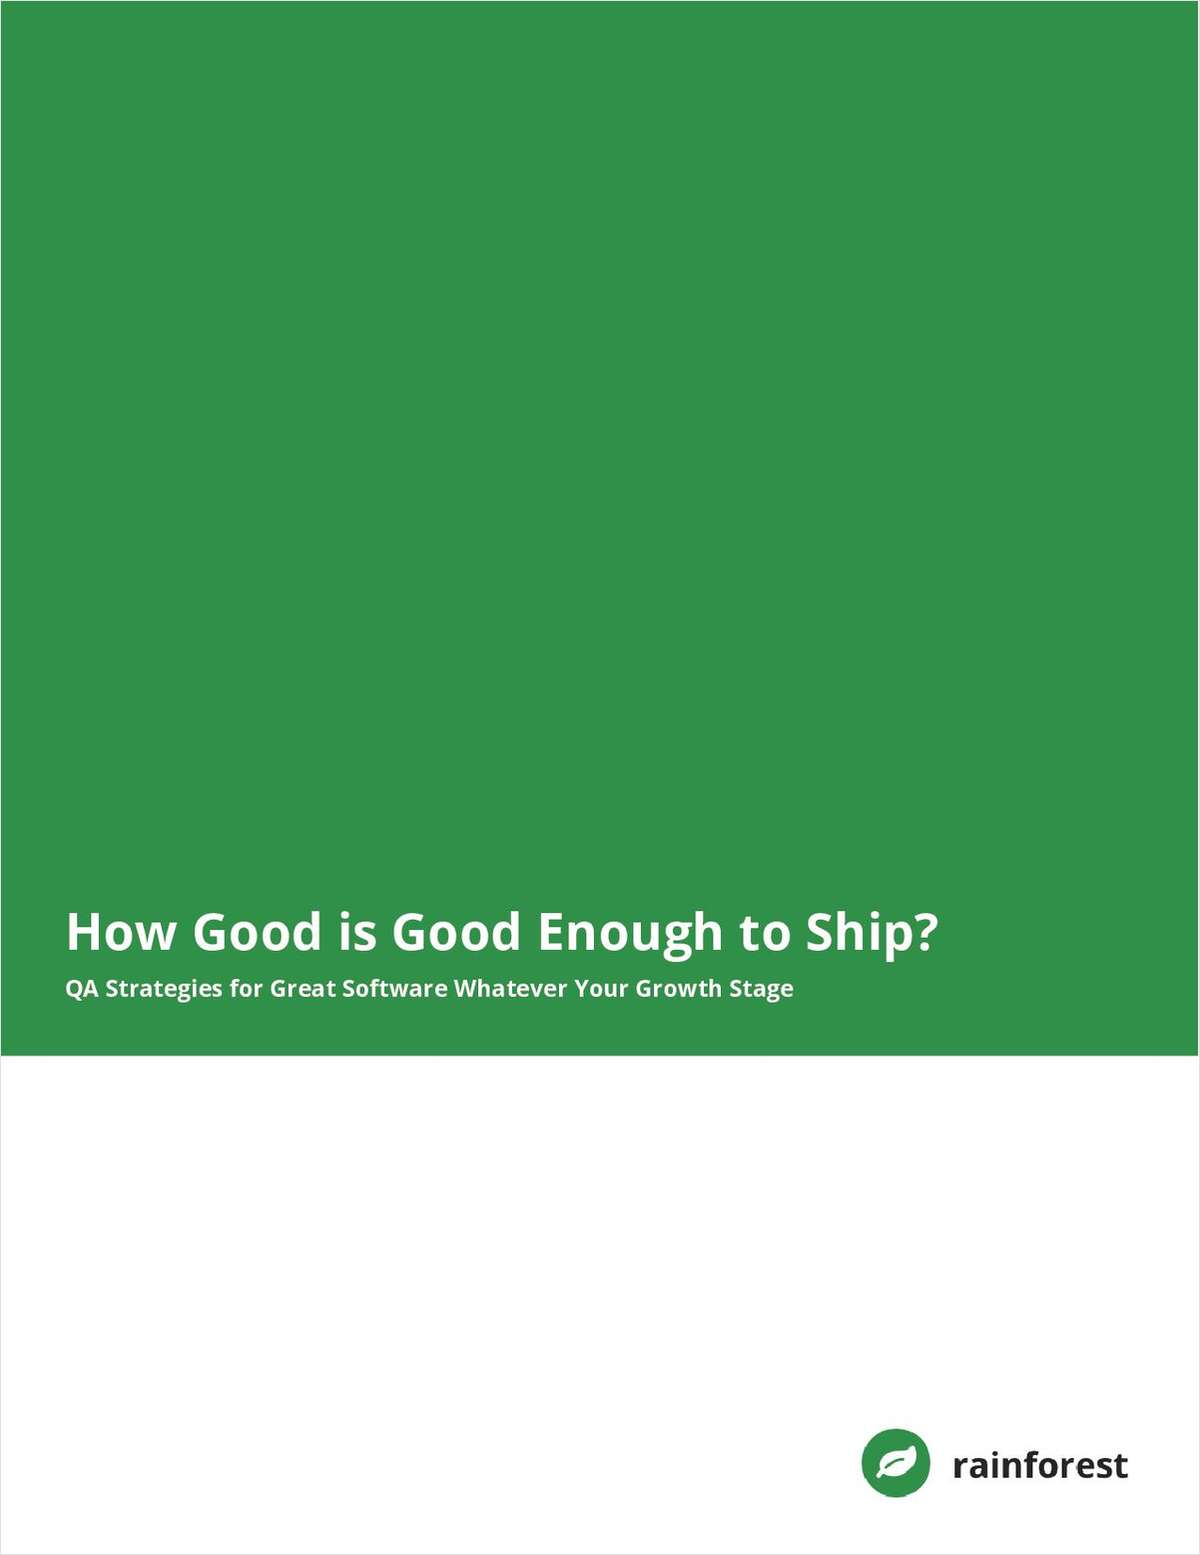 How Good is Good Enough to Ship?